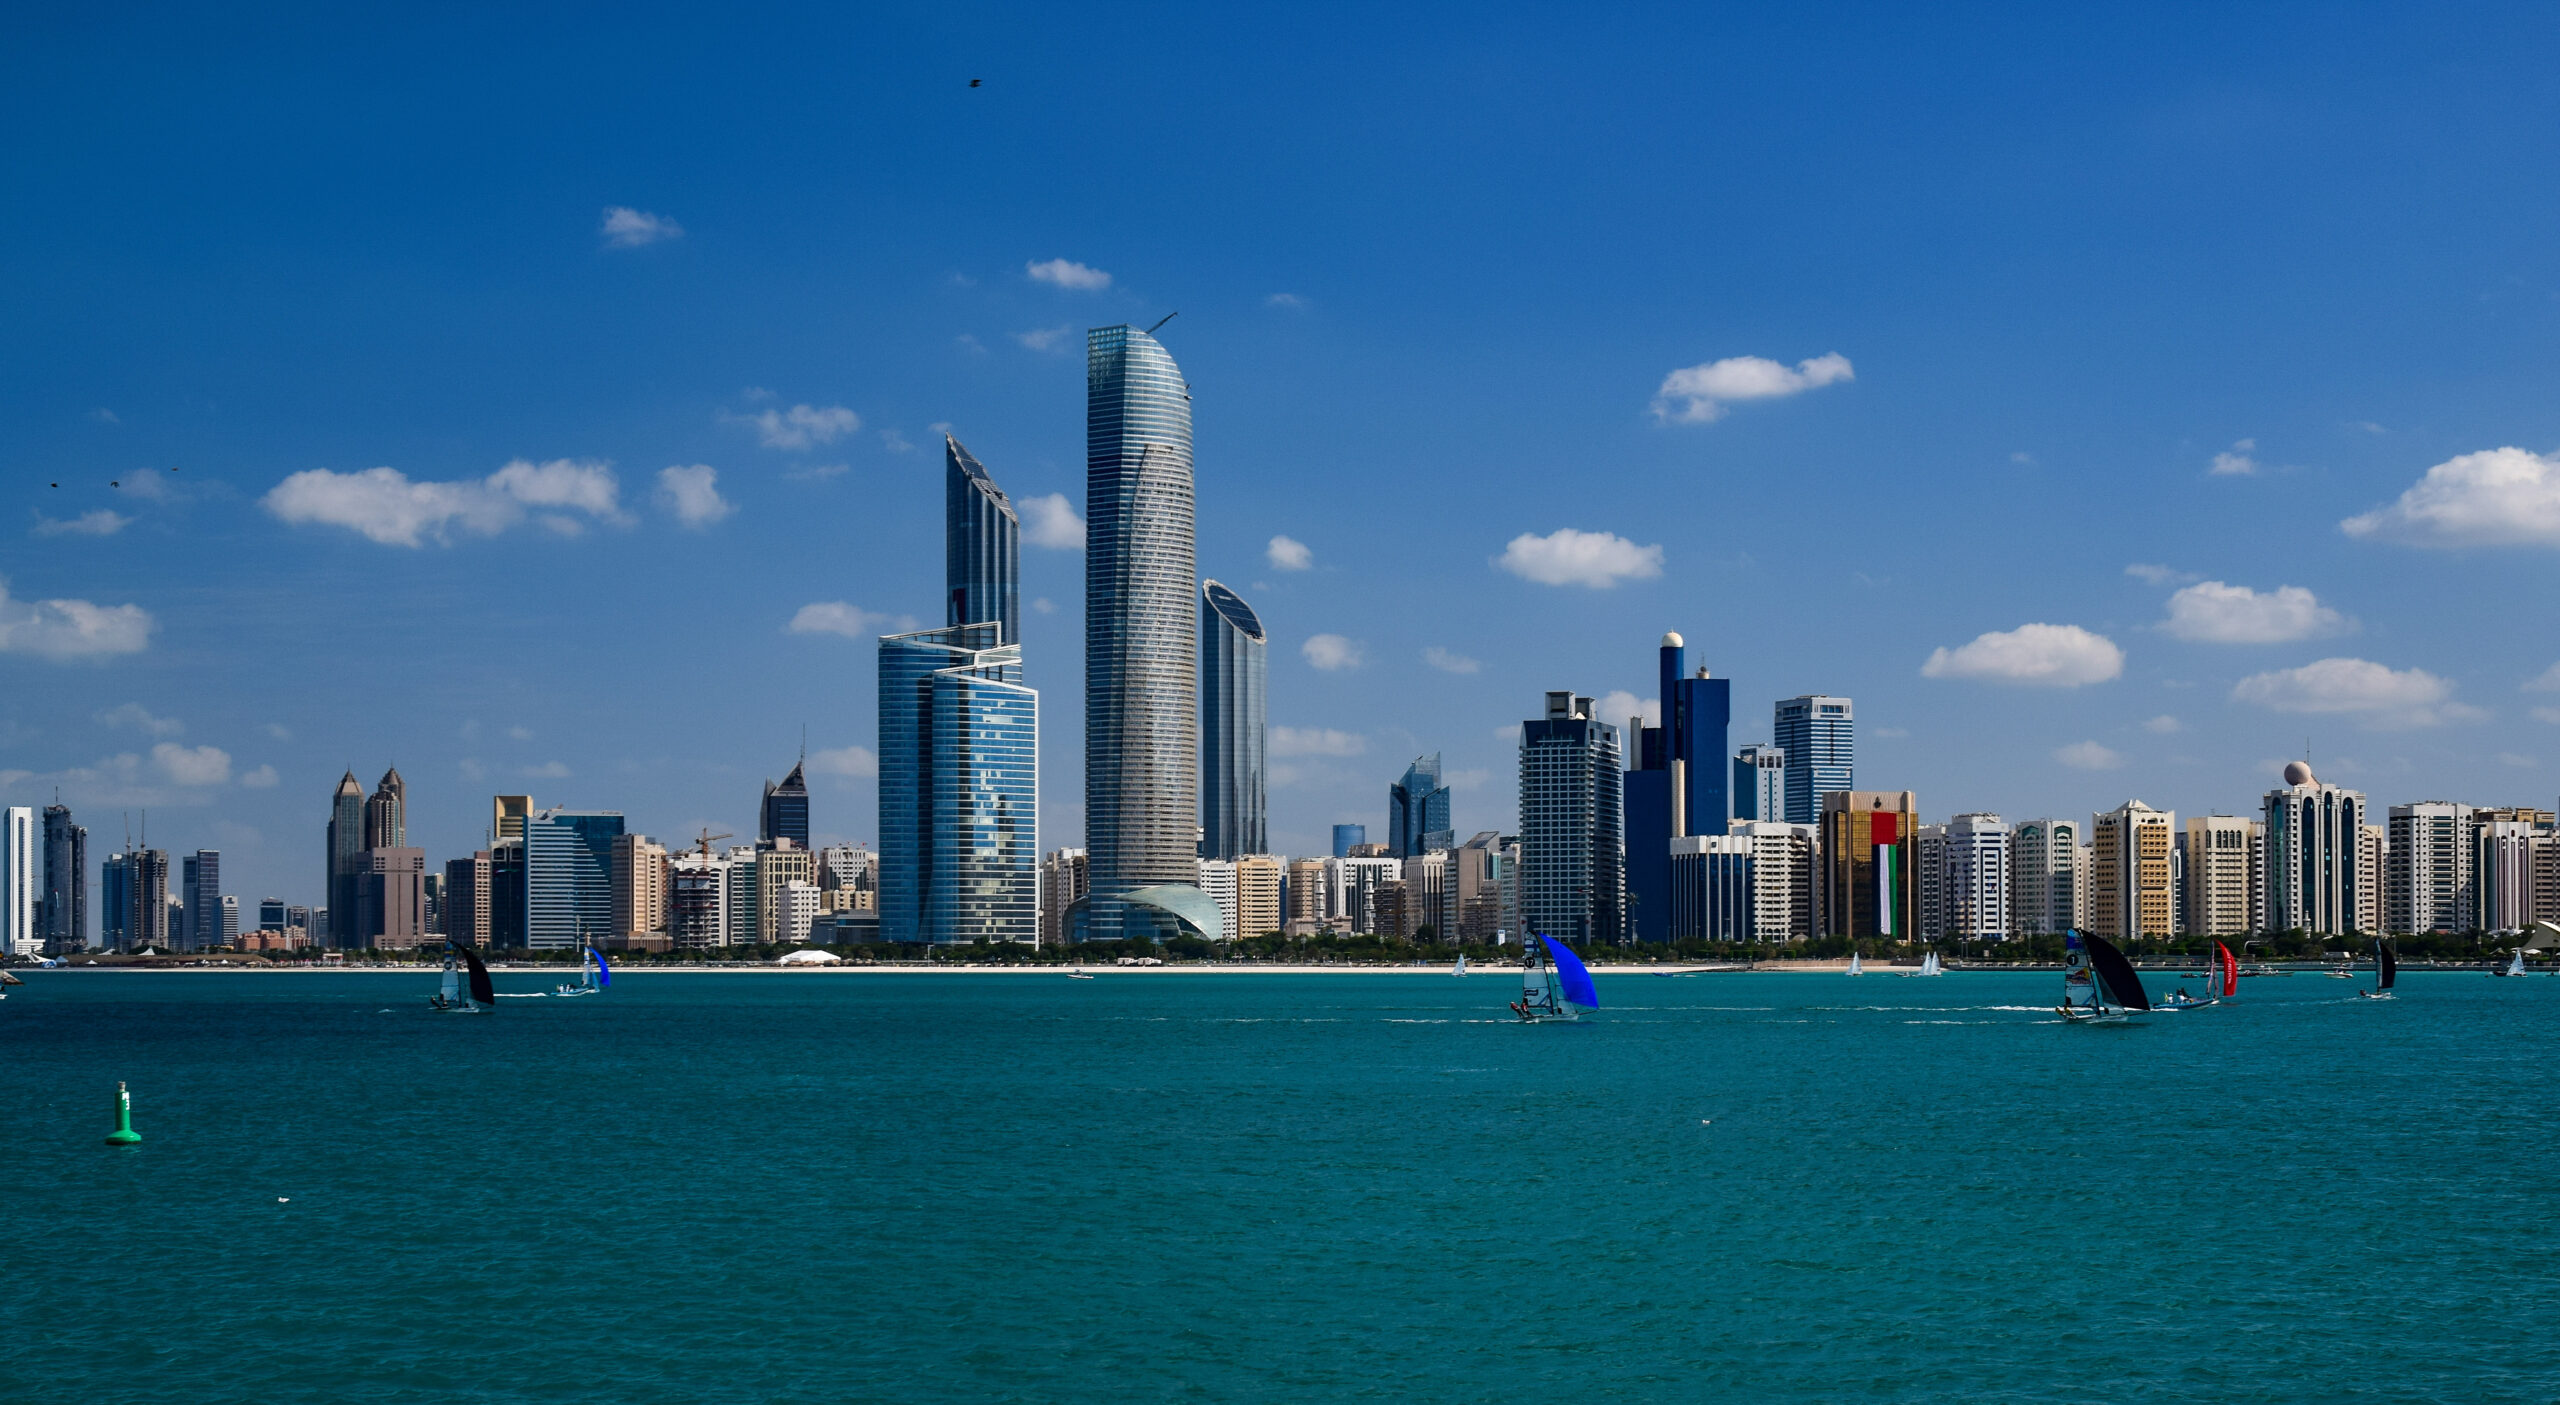 World Urban Forum in Abu Dhabi